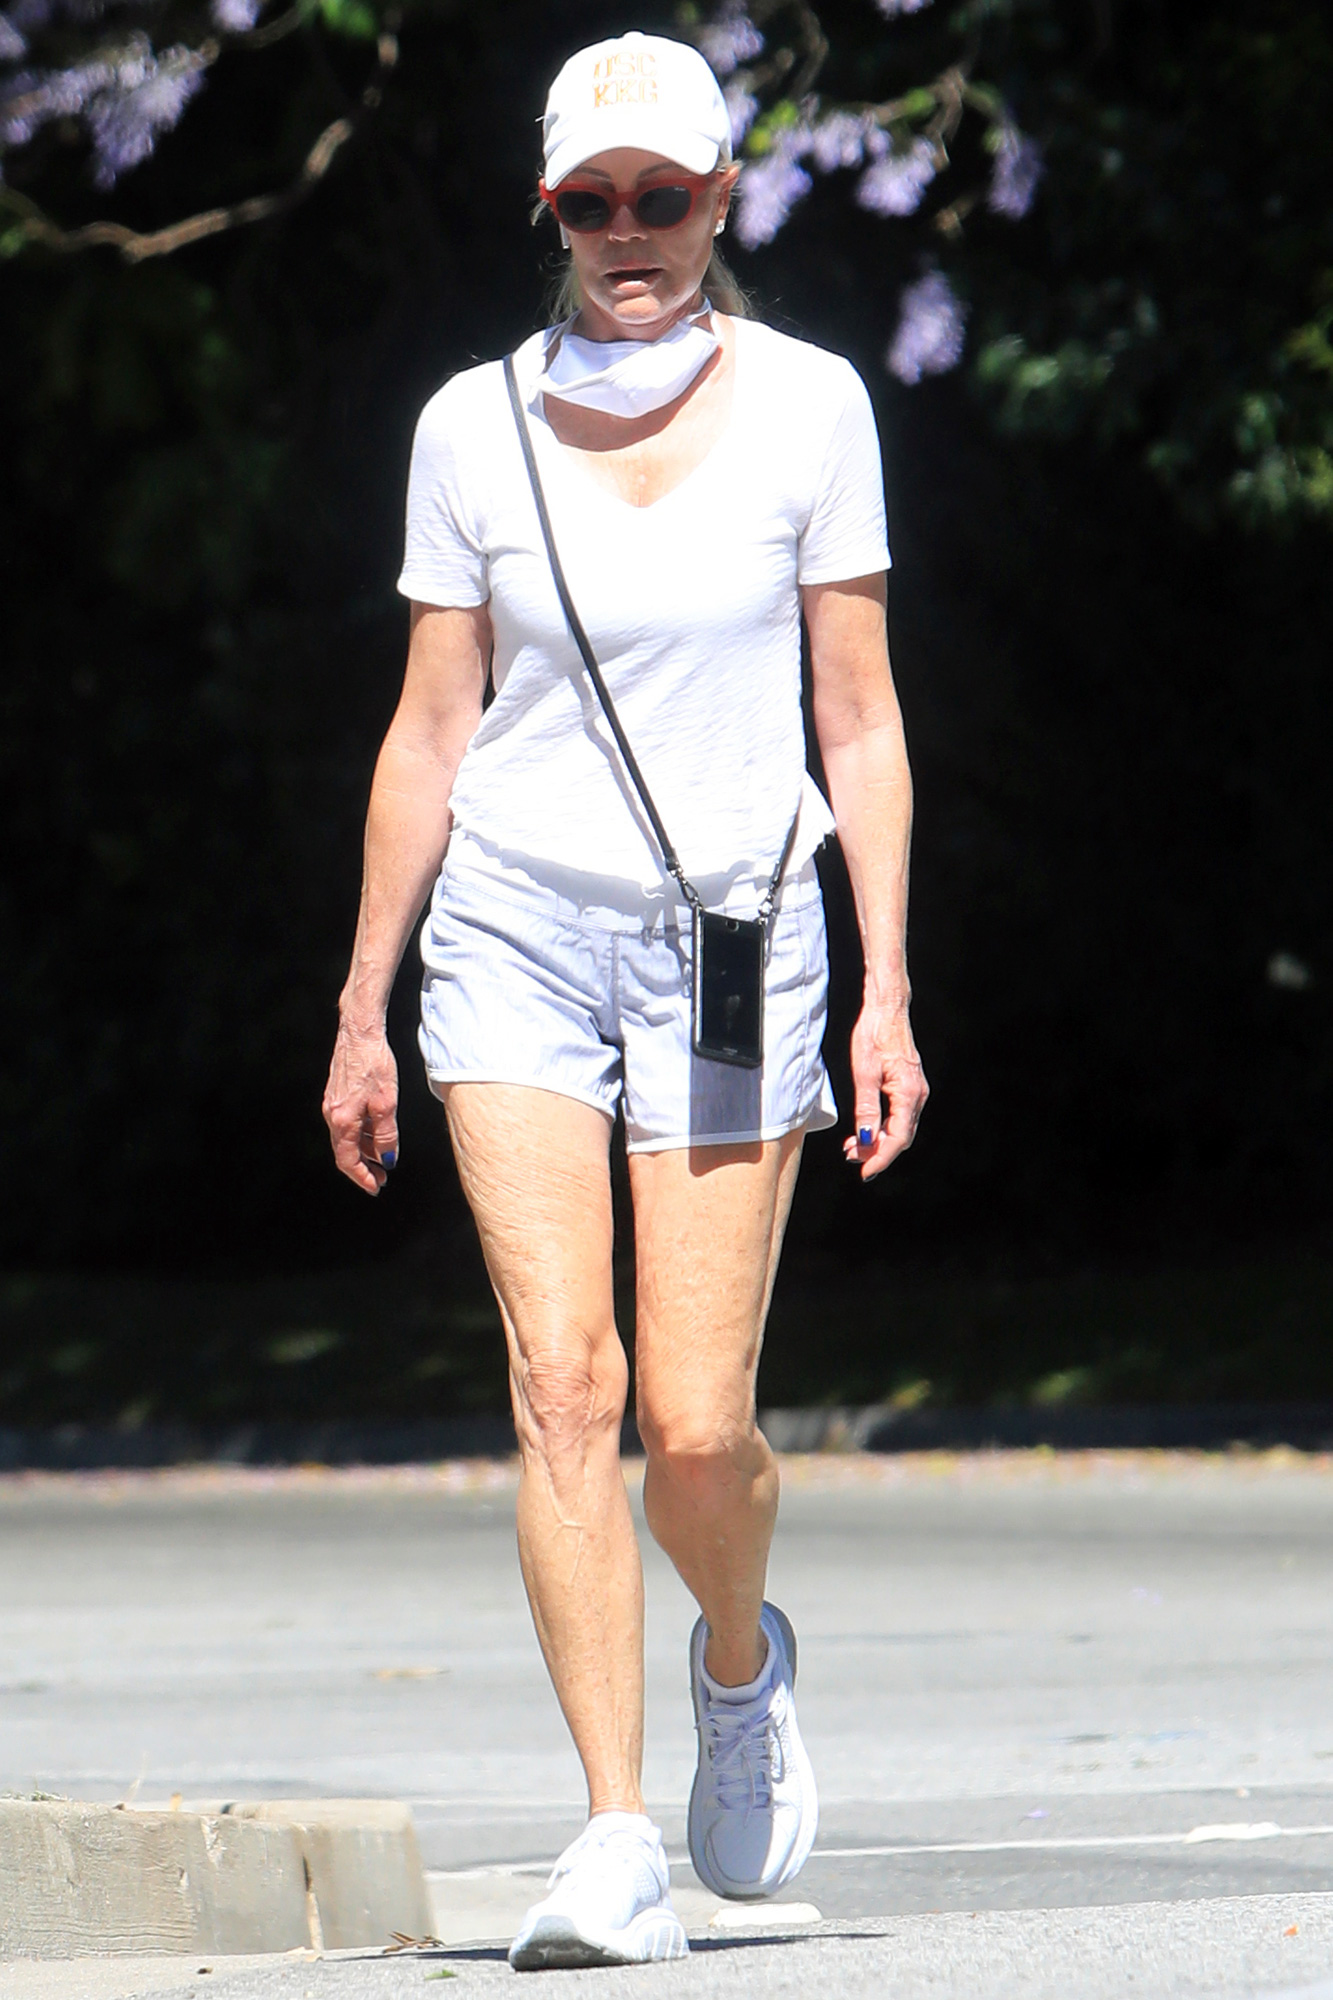 Melanie Griffith is Pictured Heading Out for a Walk in Los Angeles.